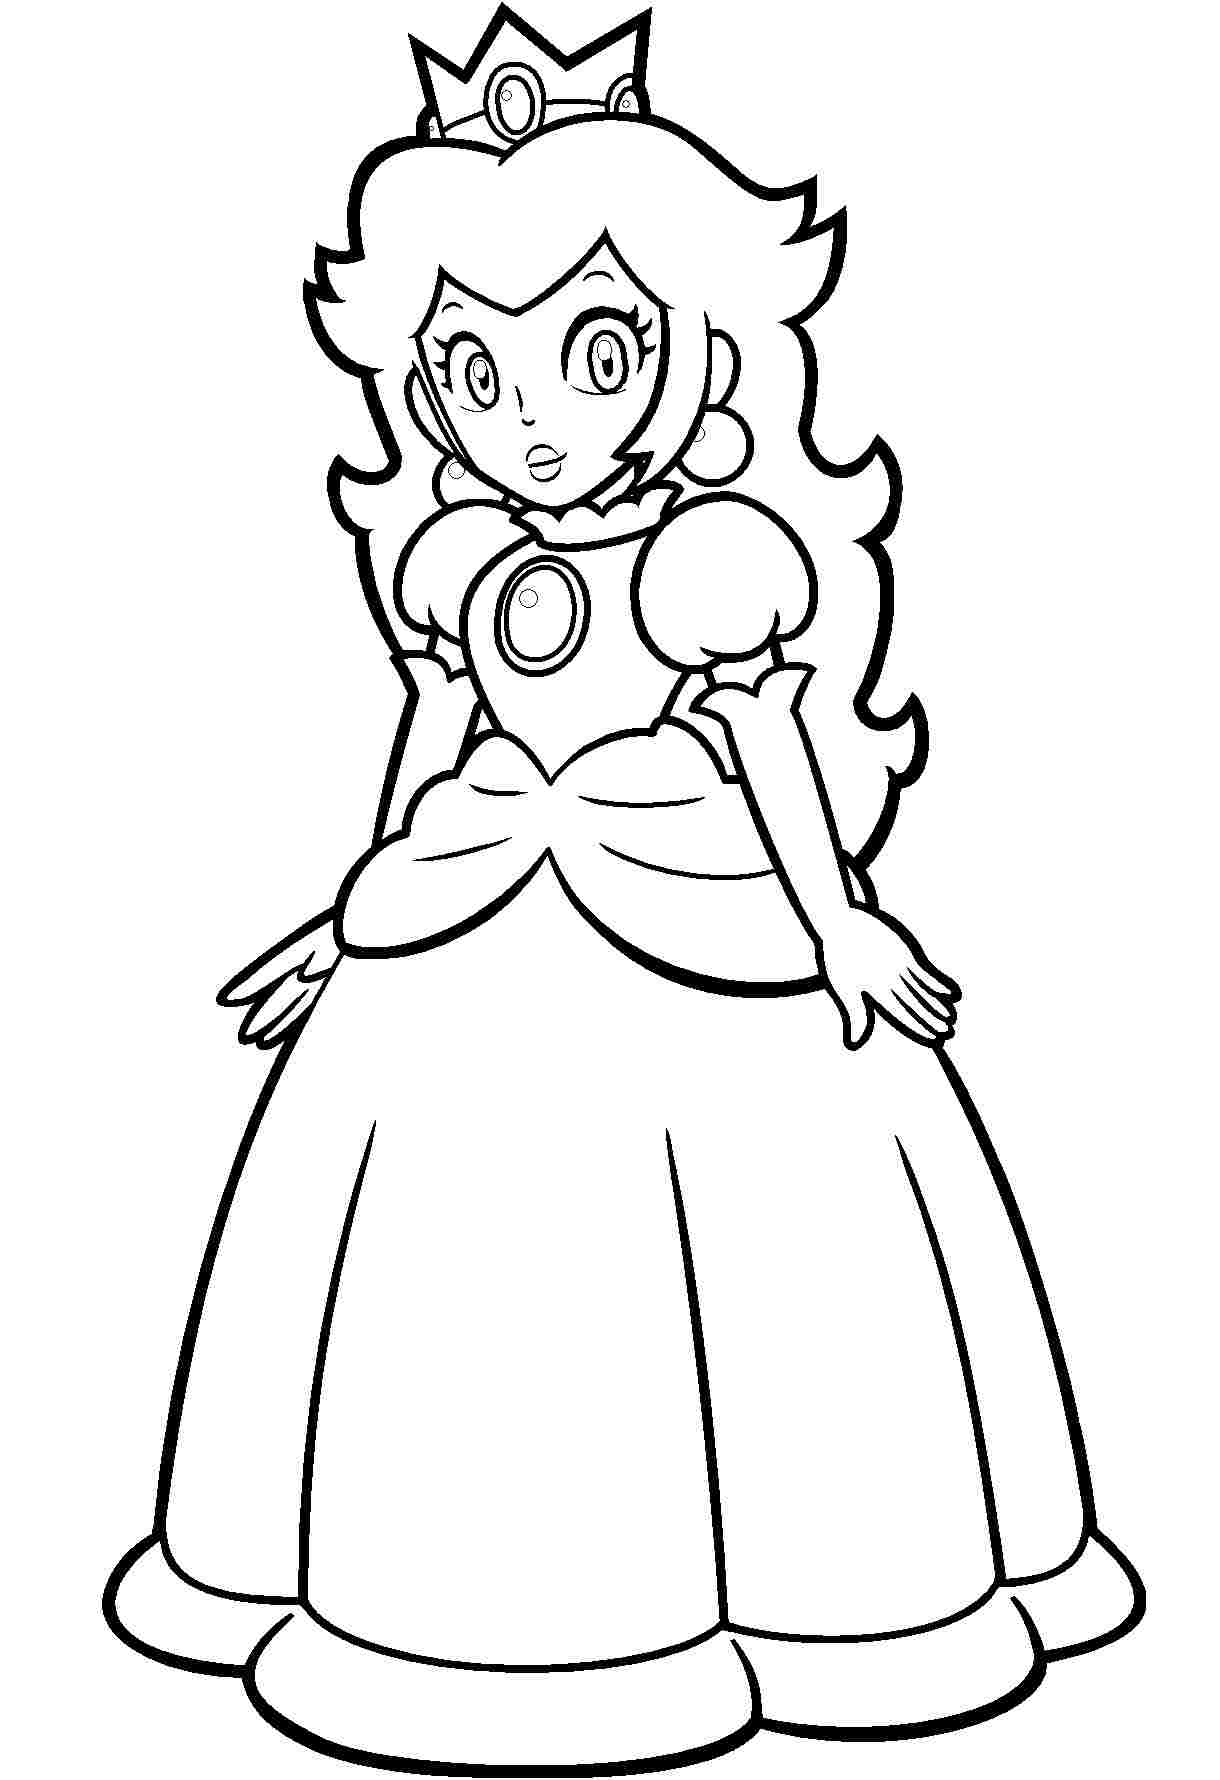 Beautiful Princess Peach from Super Mario Games Coloring Page